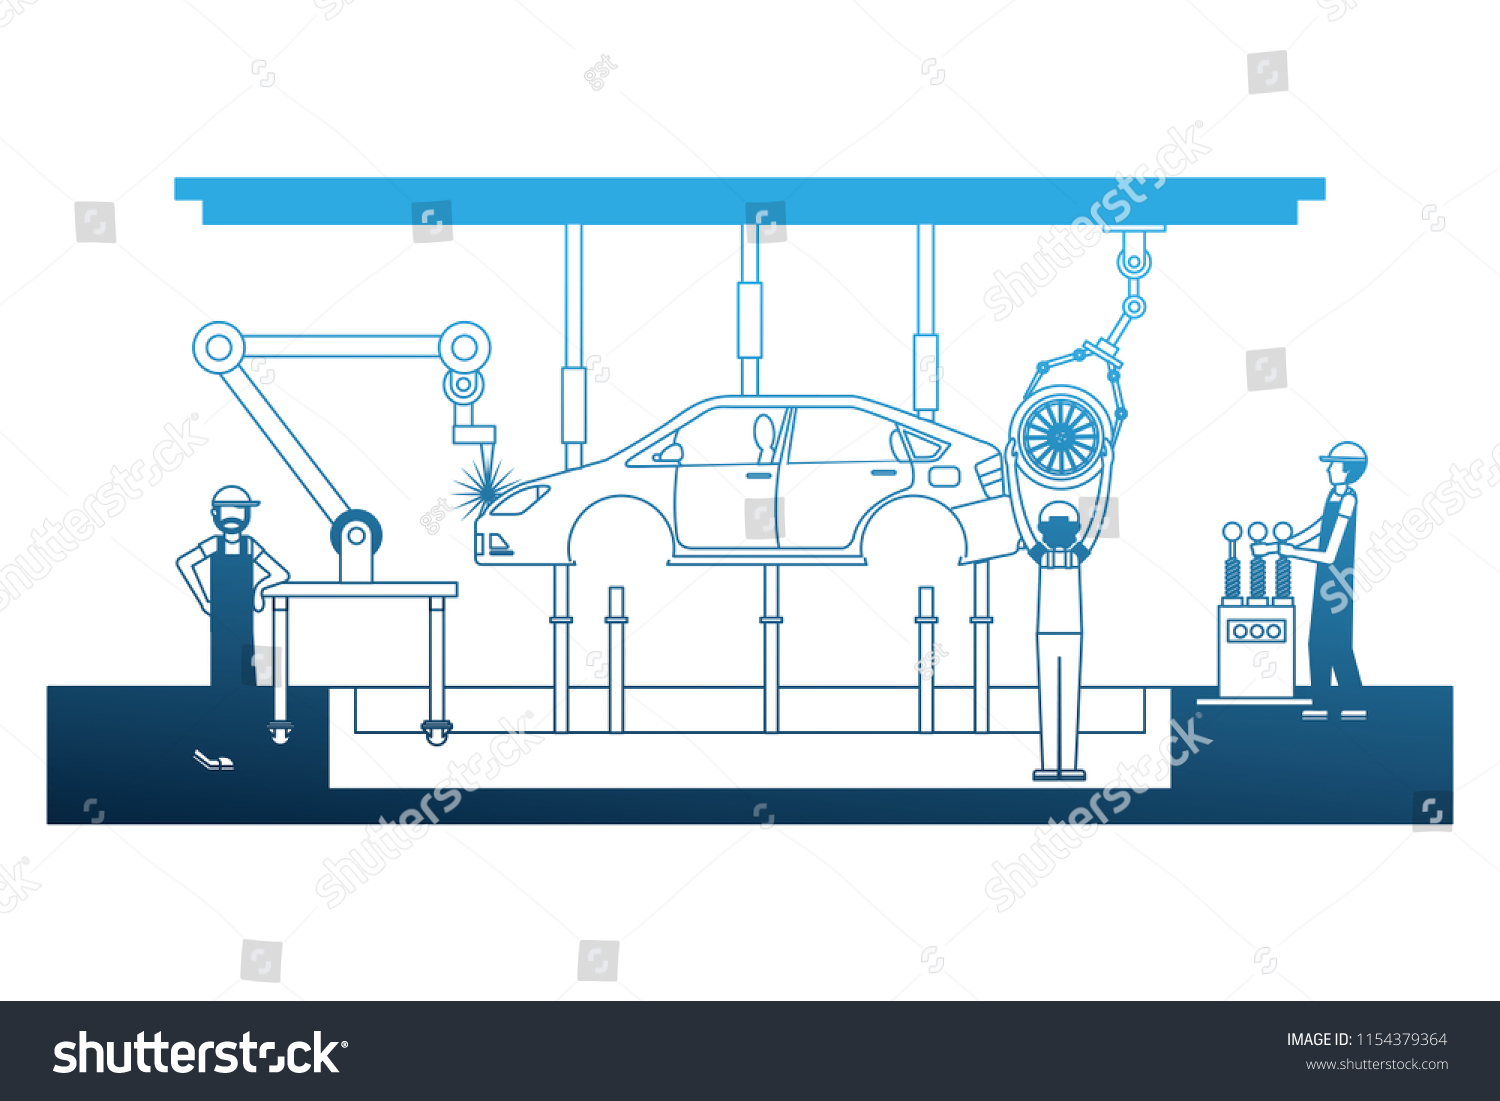 hight resolution of workers robot arms and assembly line automotive industry